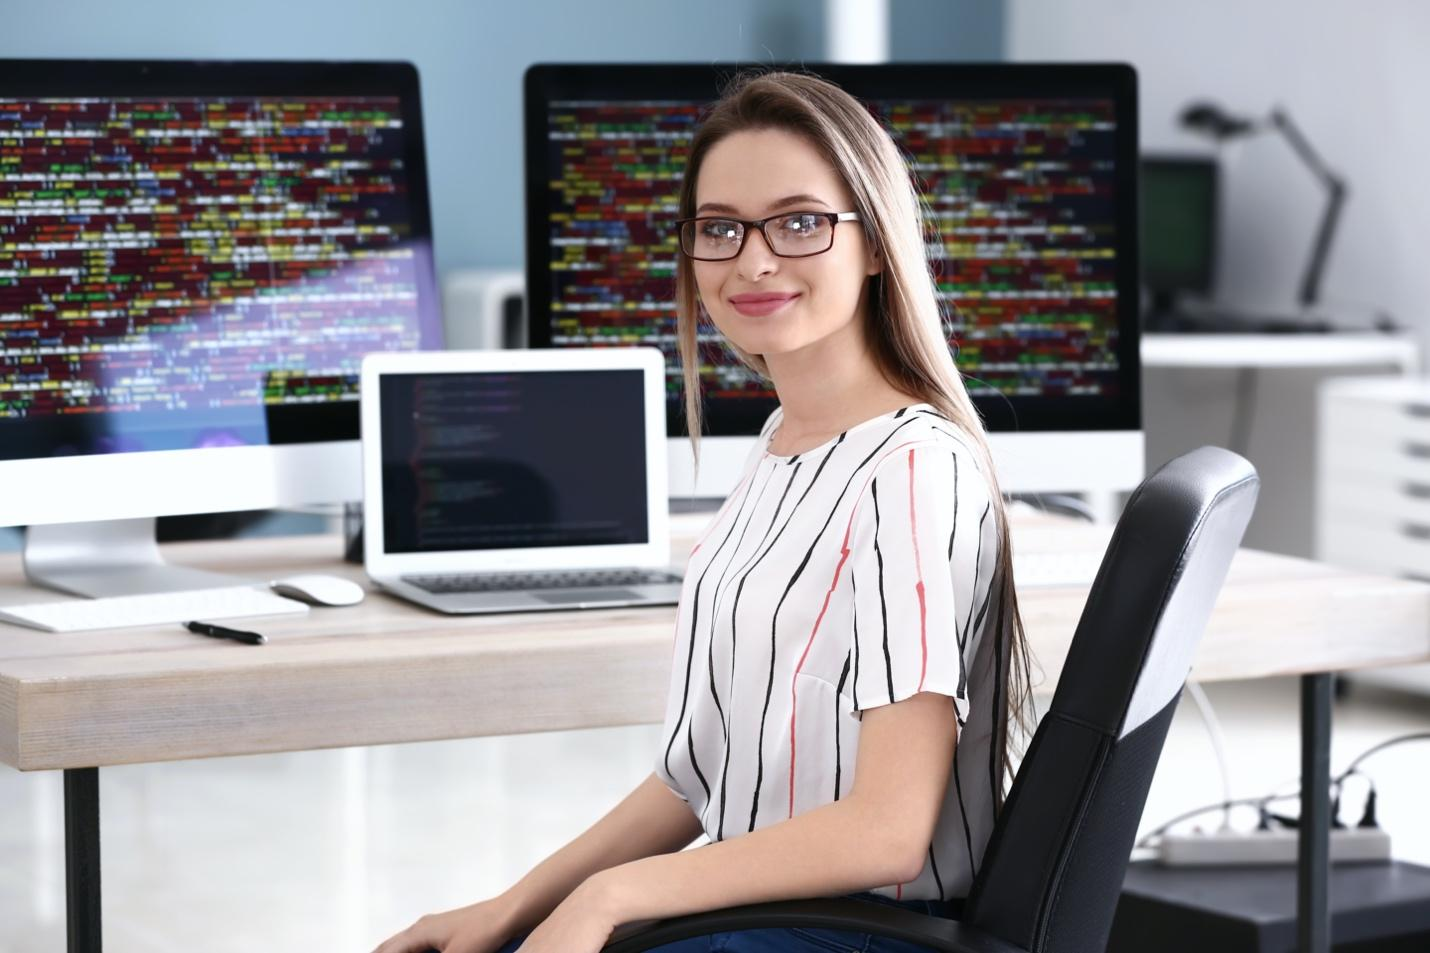 Woman smiling after getting her first job in tech sector.